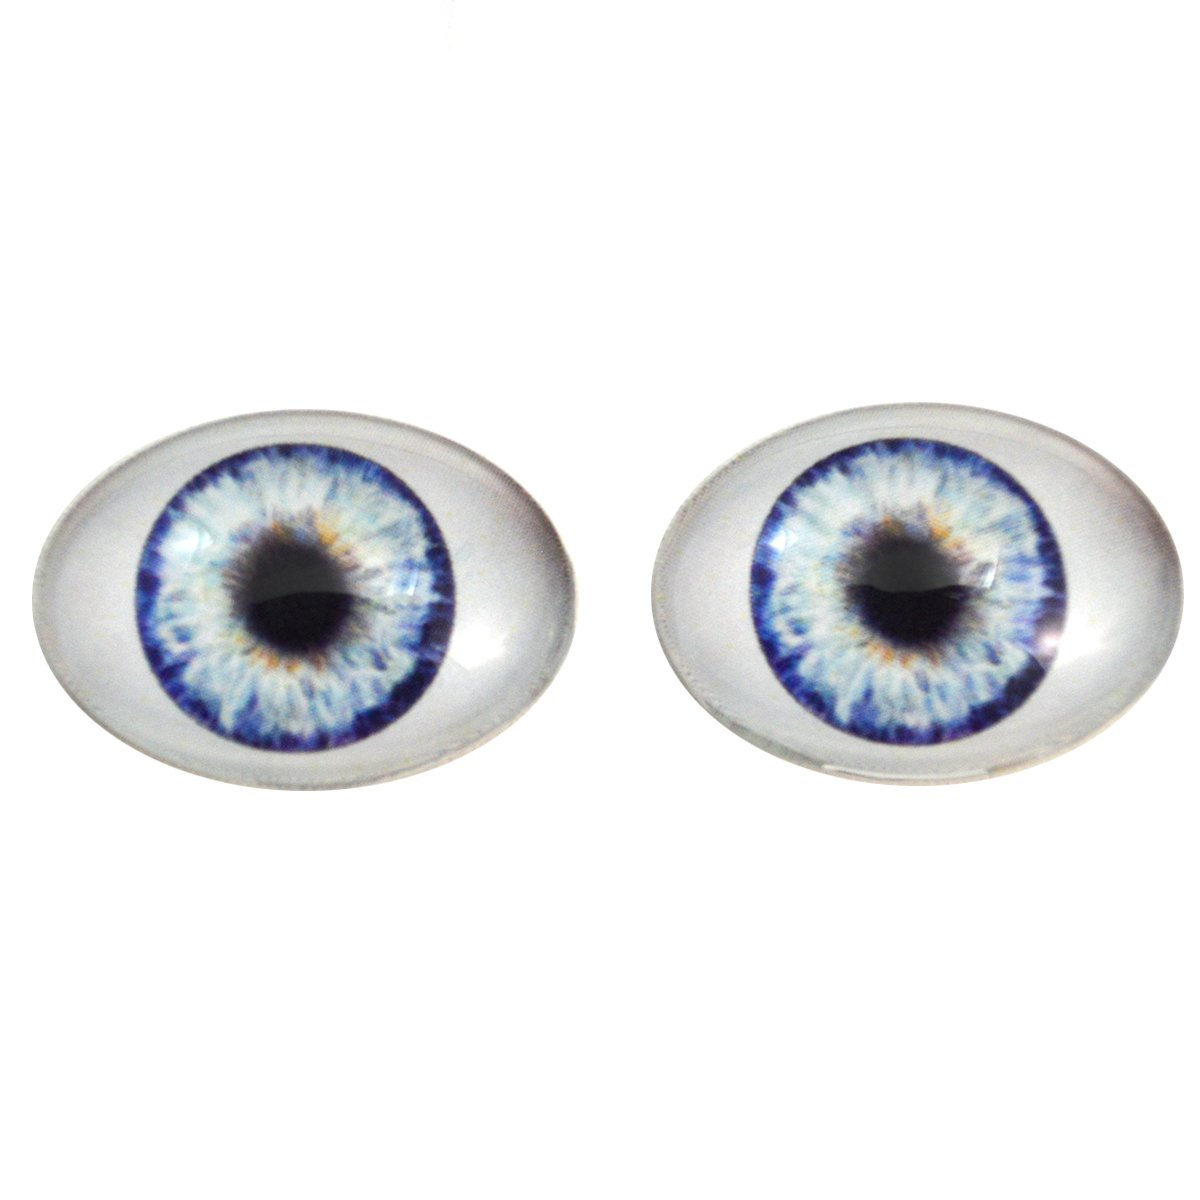 Blue Doll Oval Glass Eyes Fantasy Taxidermy Art Doll Making or Jewelry Crafts Set of 2 (30mm x 40mm)